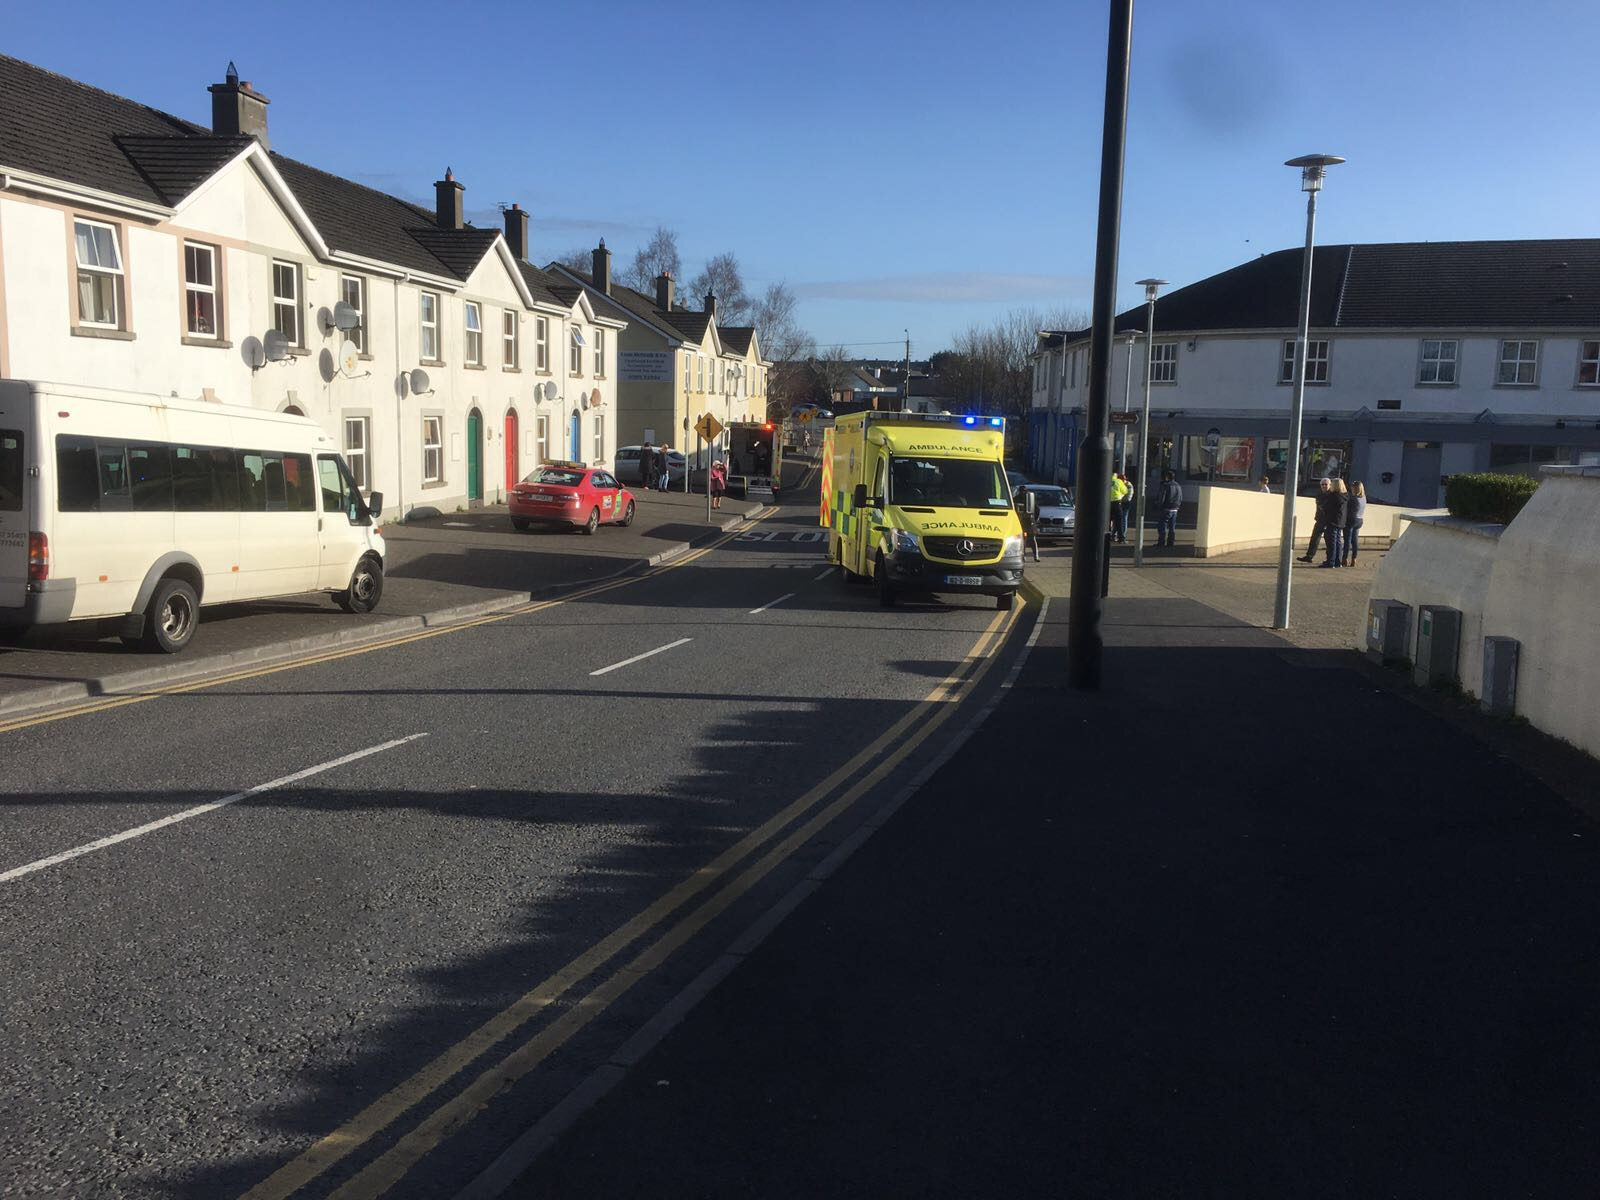 Picture of the scene at Towerhill